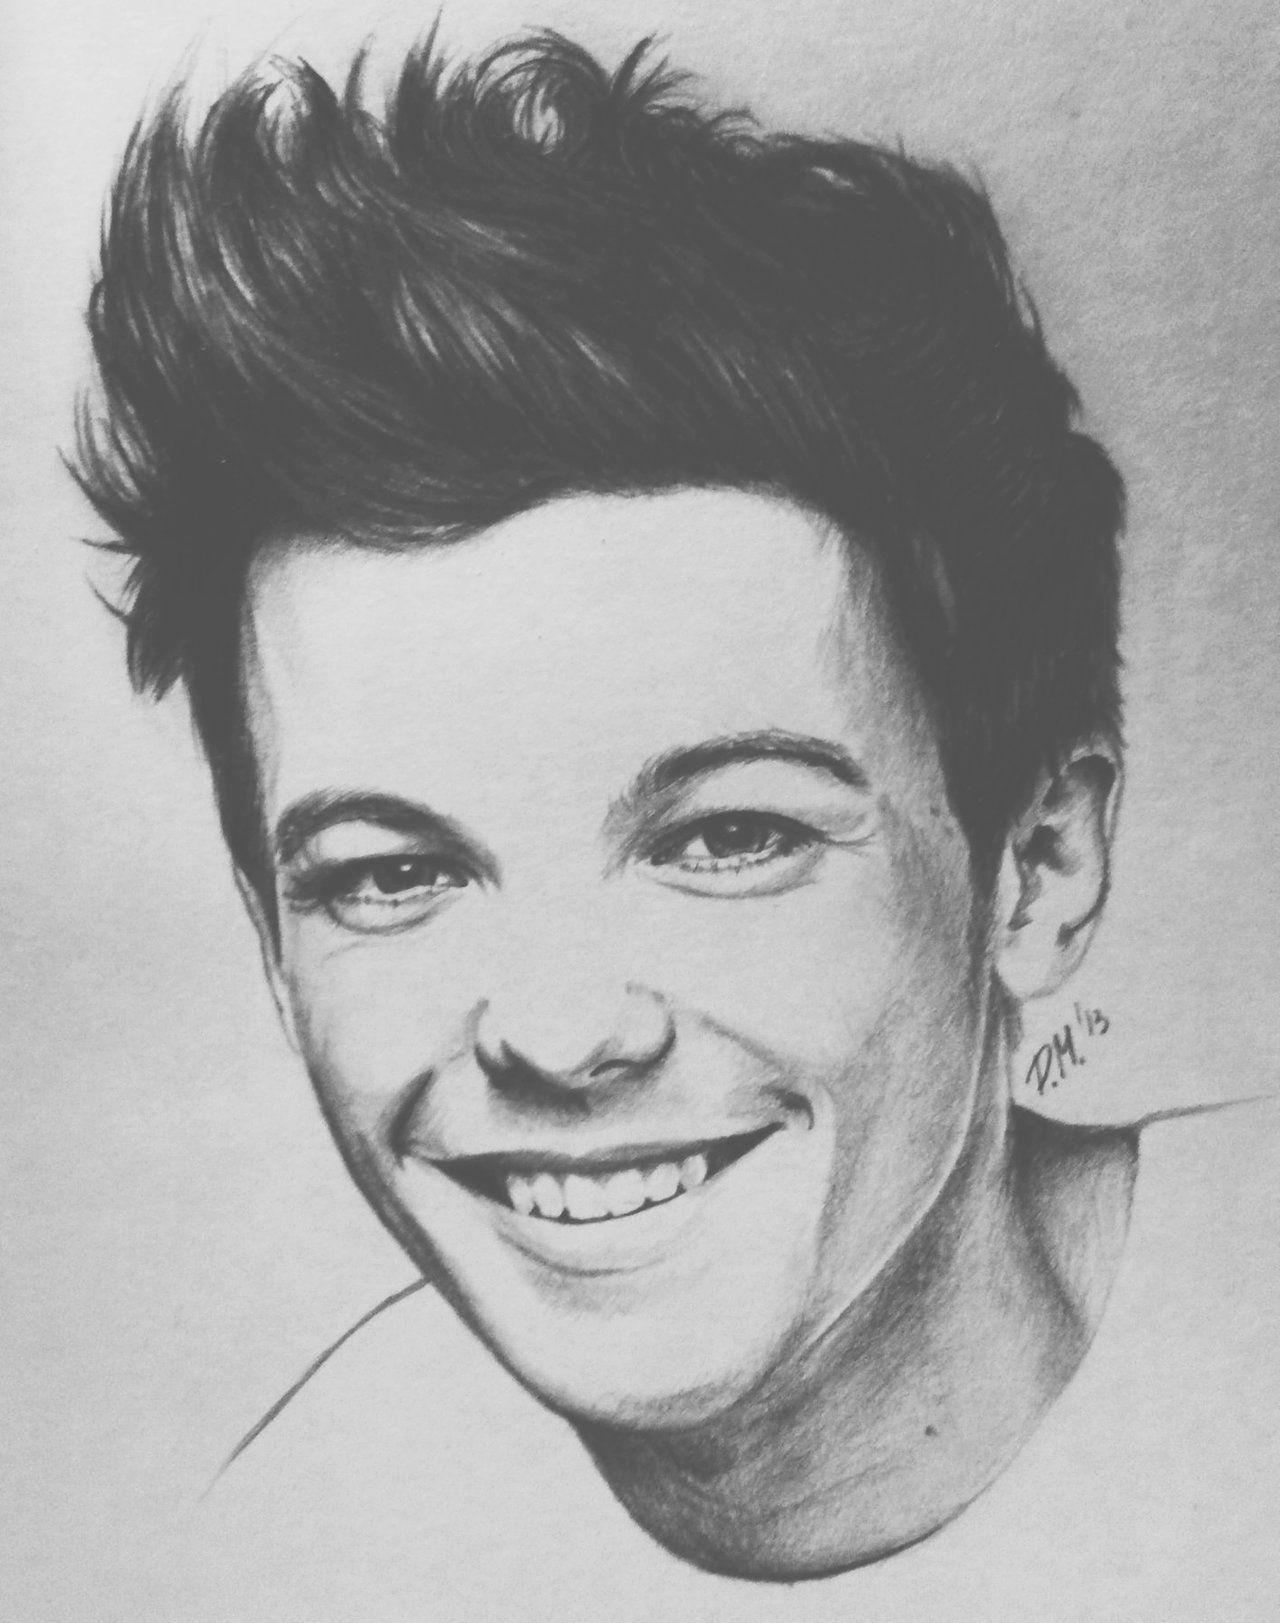 coloring pencil louis vuitton colored pencils 403 forbidden one direction drawings one direction art pencil louis vuitton coloring colored pencils